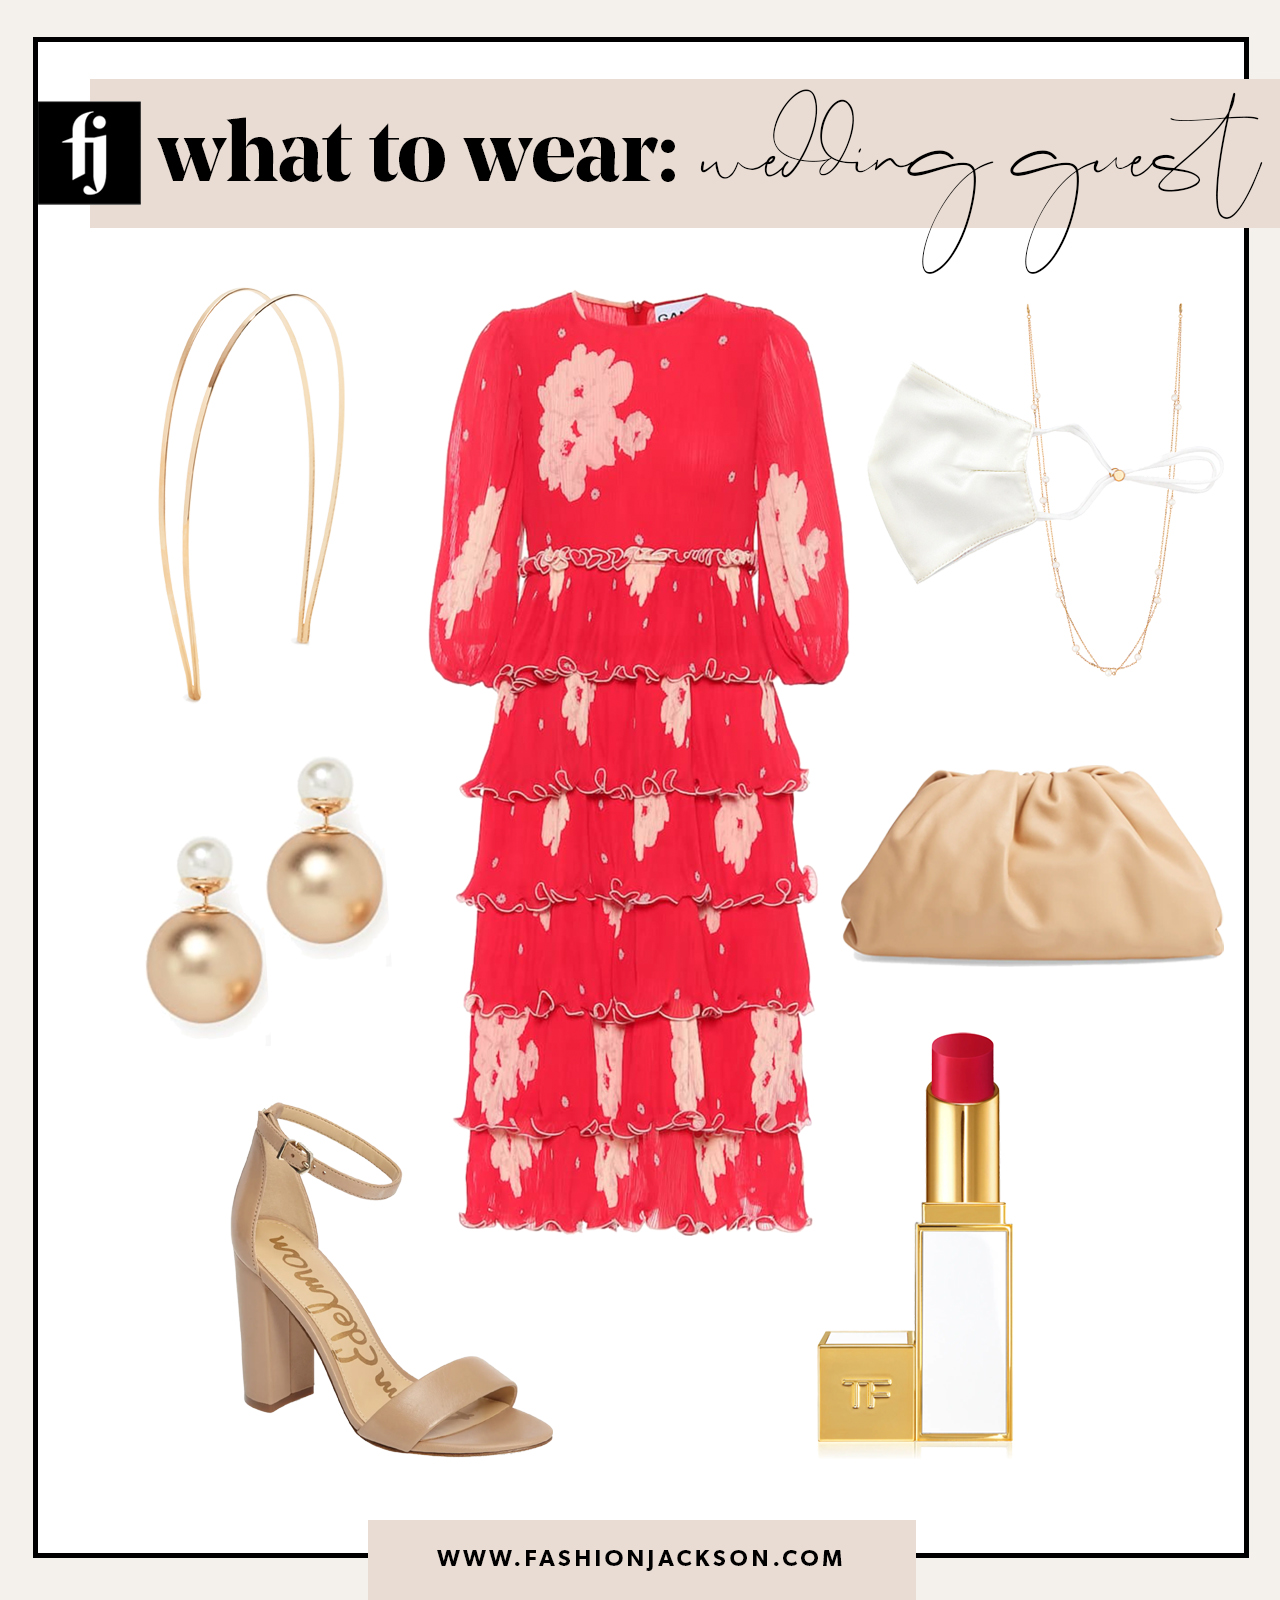 wedding guest outfit 6